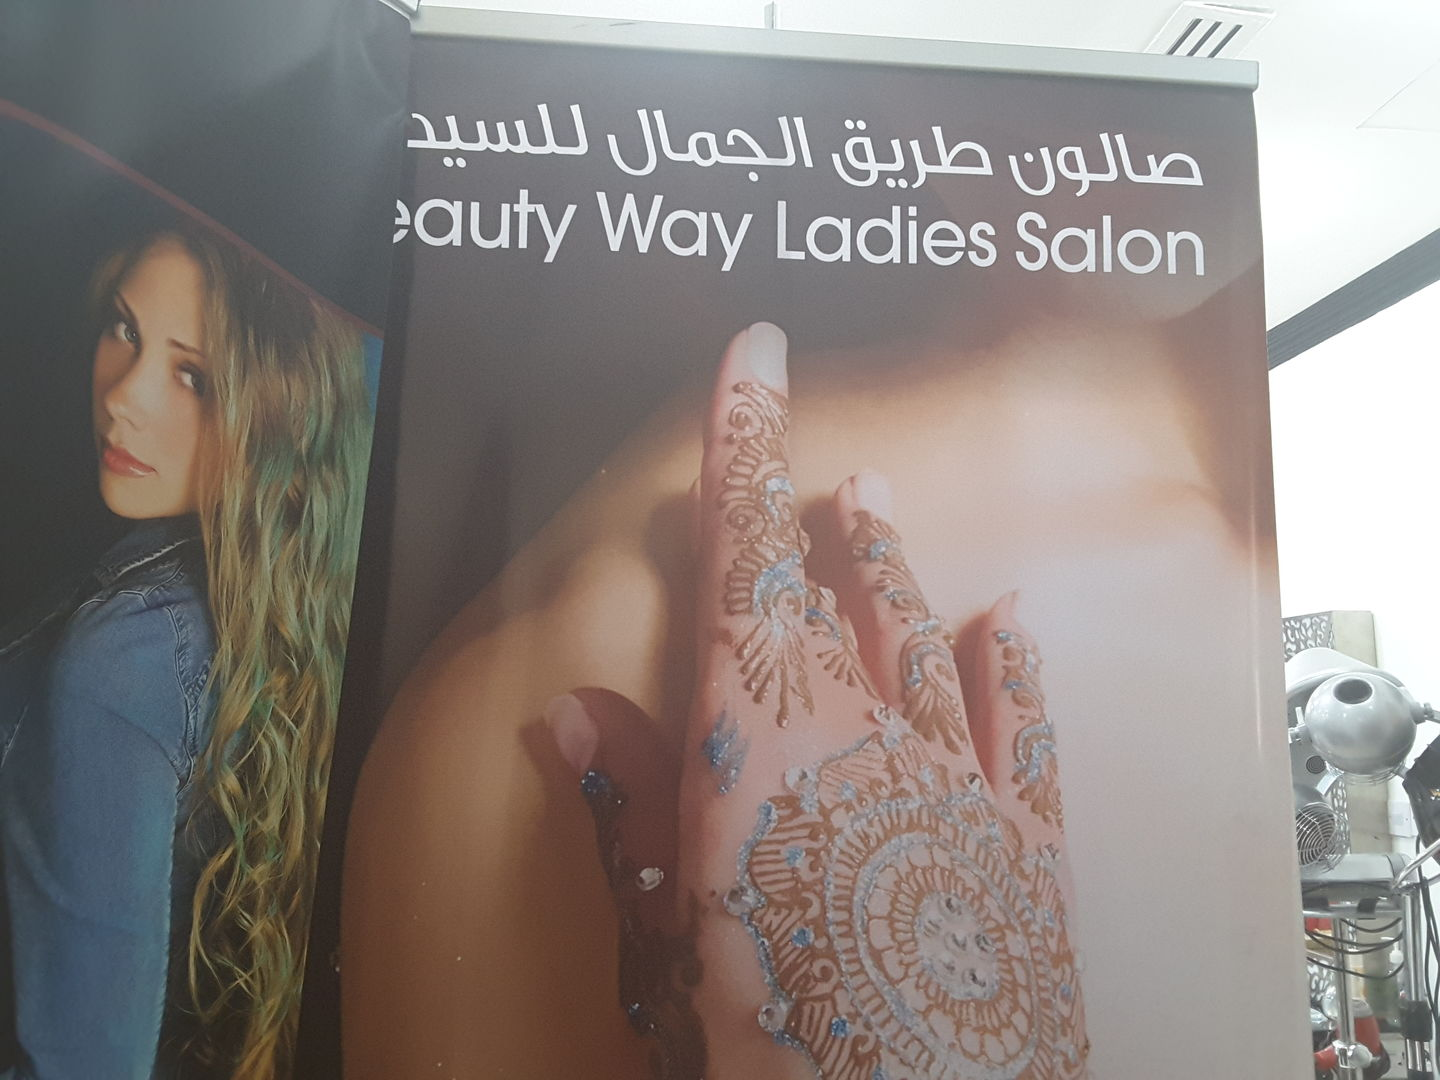 HiDubai-business-beauty-way-ladies-salon-beauty-wellness-health-beauty-salons-al-satwa-dubai-2